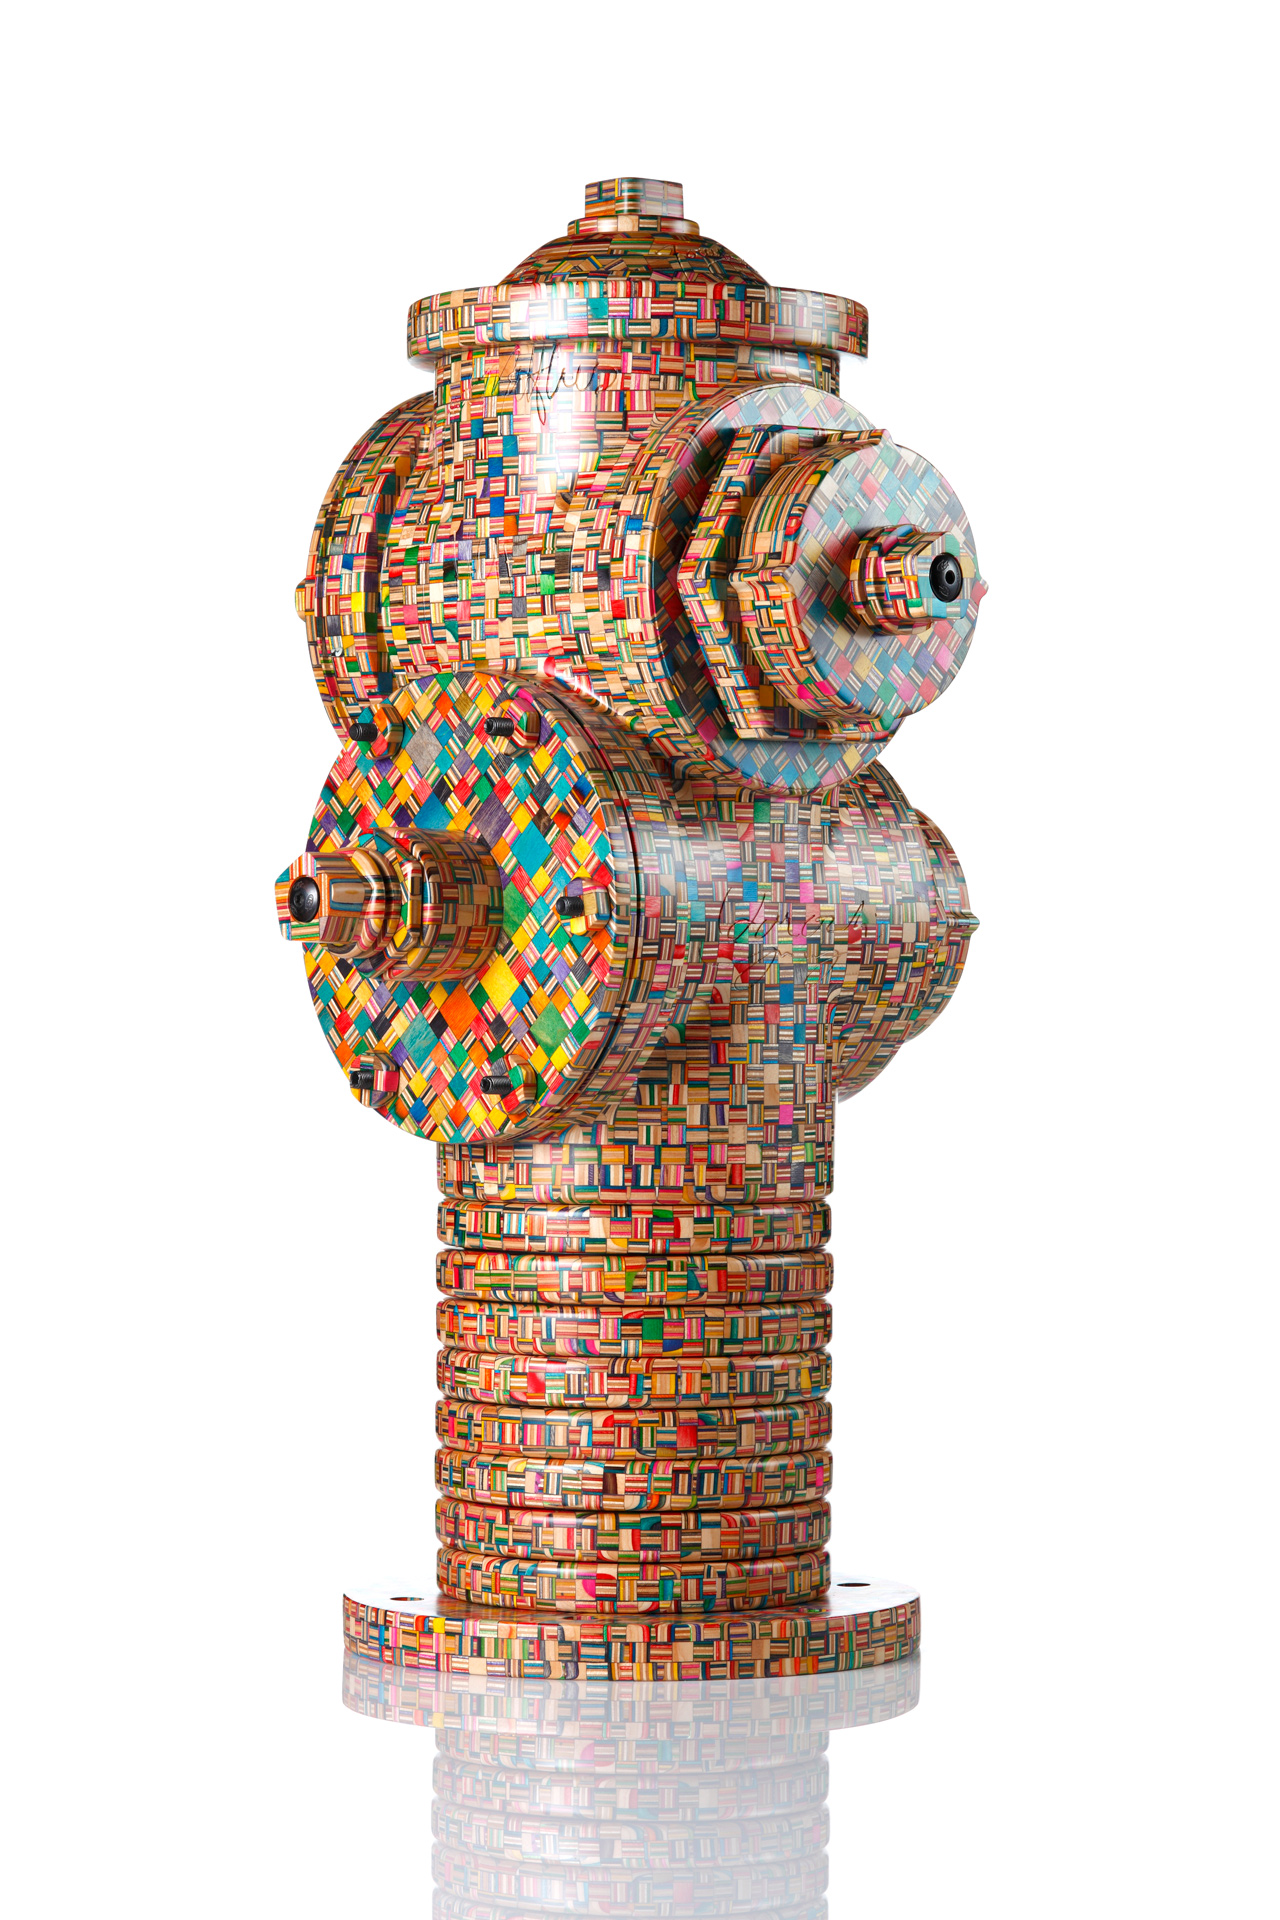 L.A. Fire Hydrant (Keith Hufnagel)